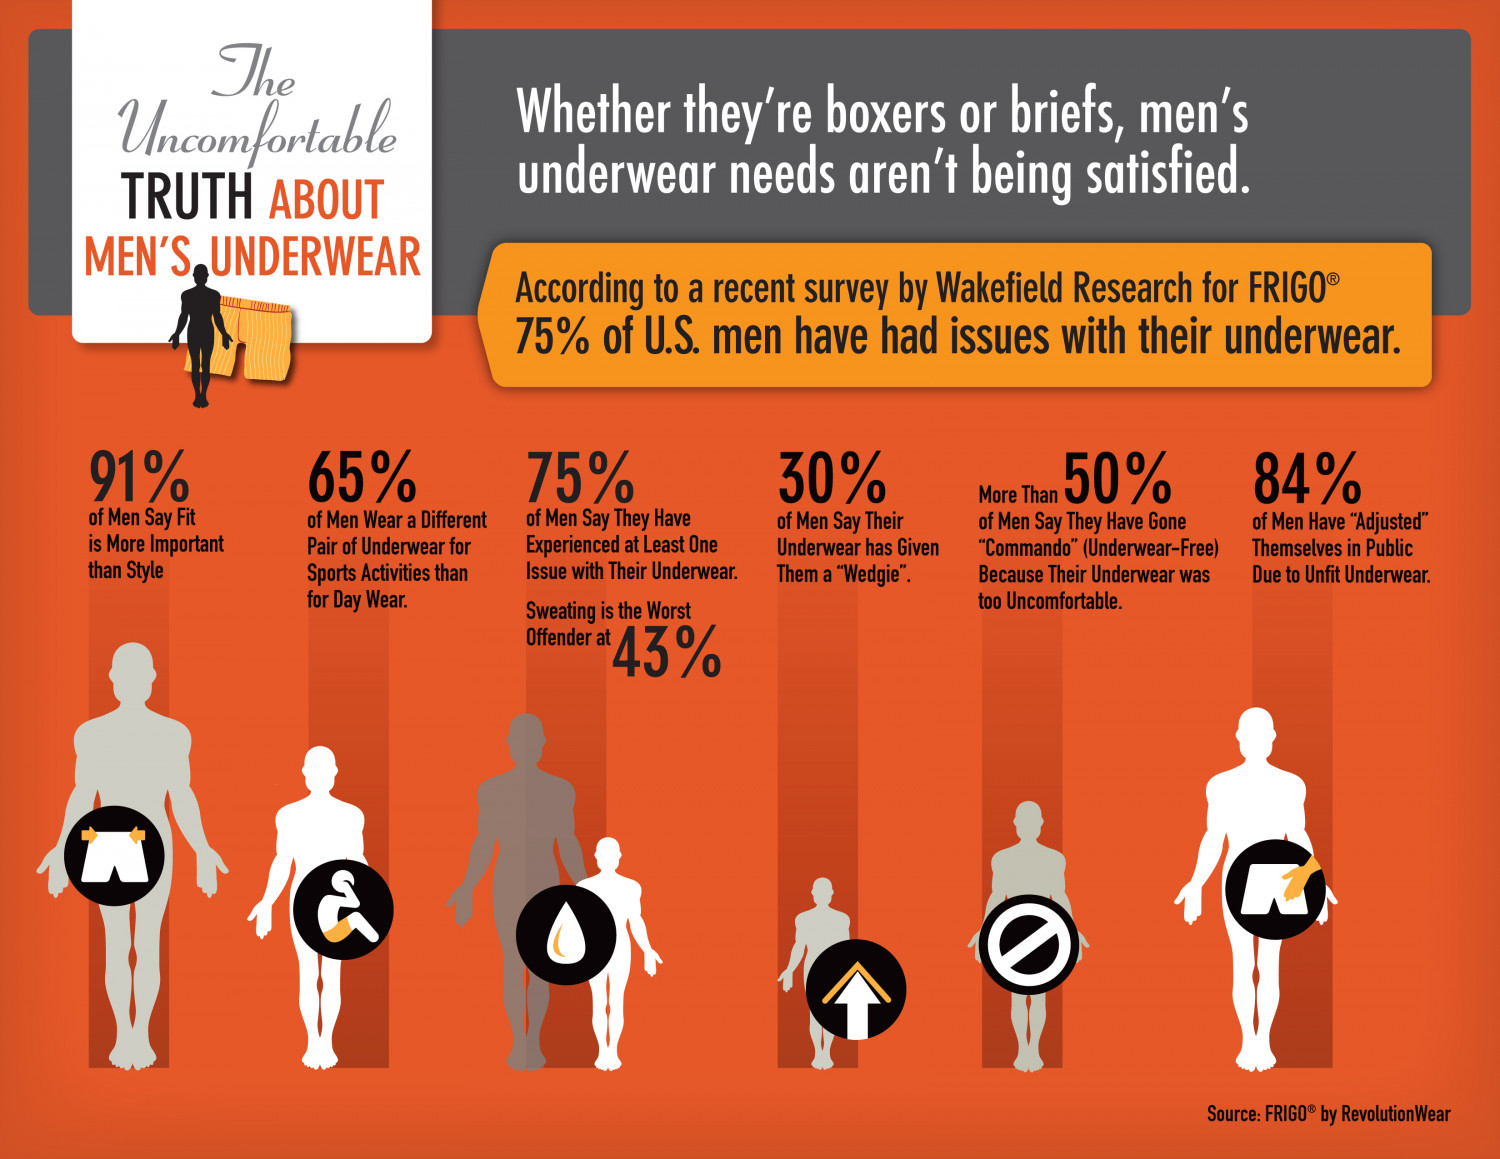 The Uncomfortable Truth About Men's Underwear Infographic